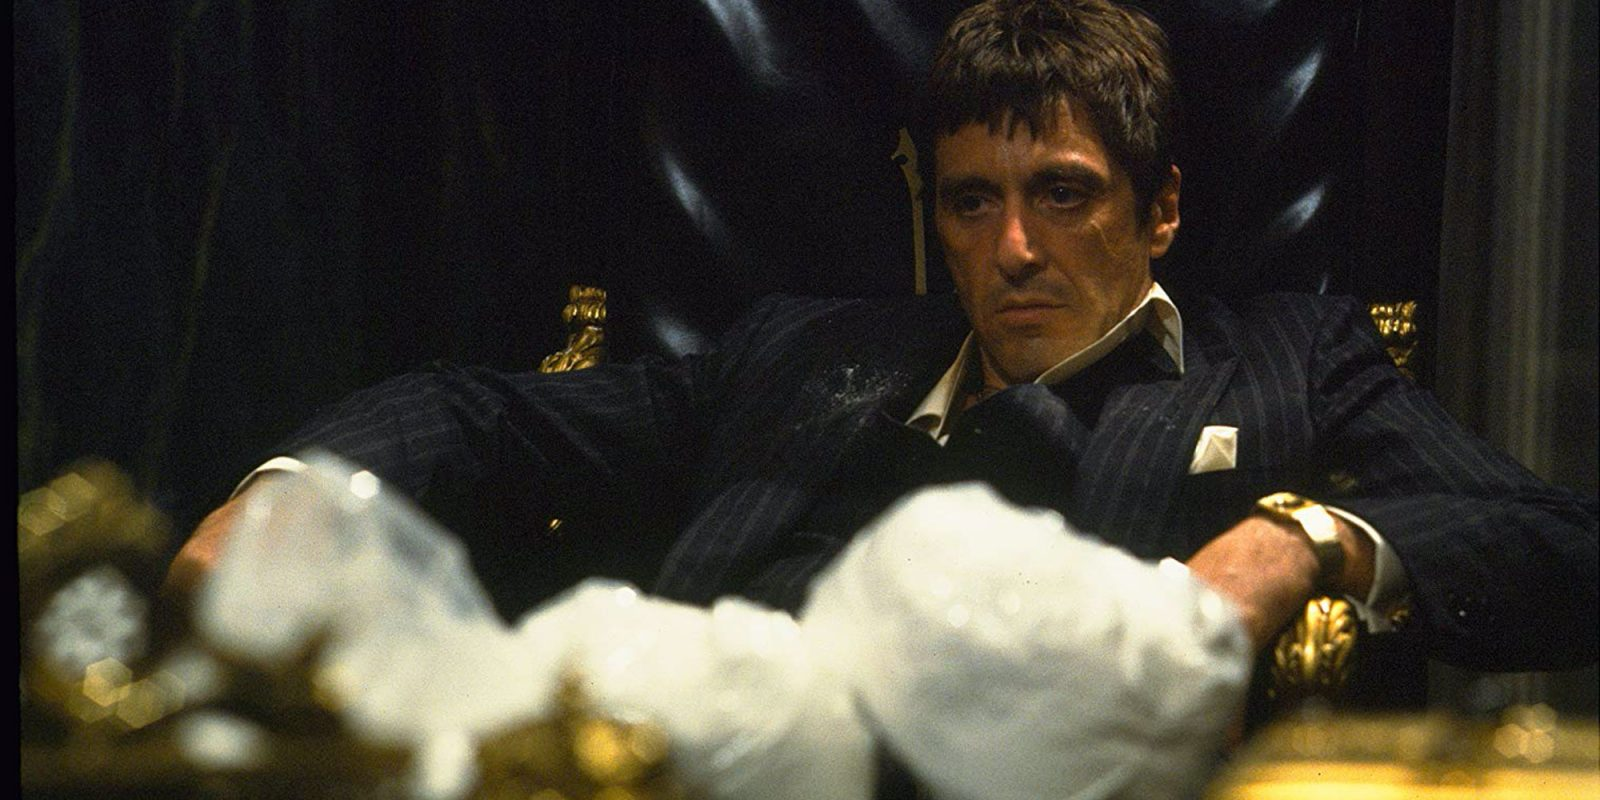 Score Halloween classics, Scarface, 007 bundles, and more on Blu-ray from $5